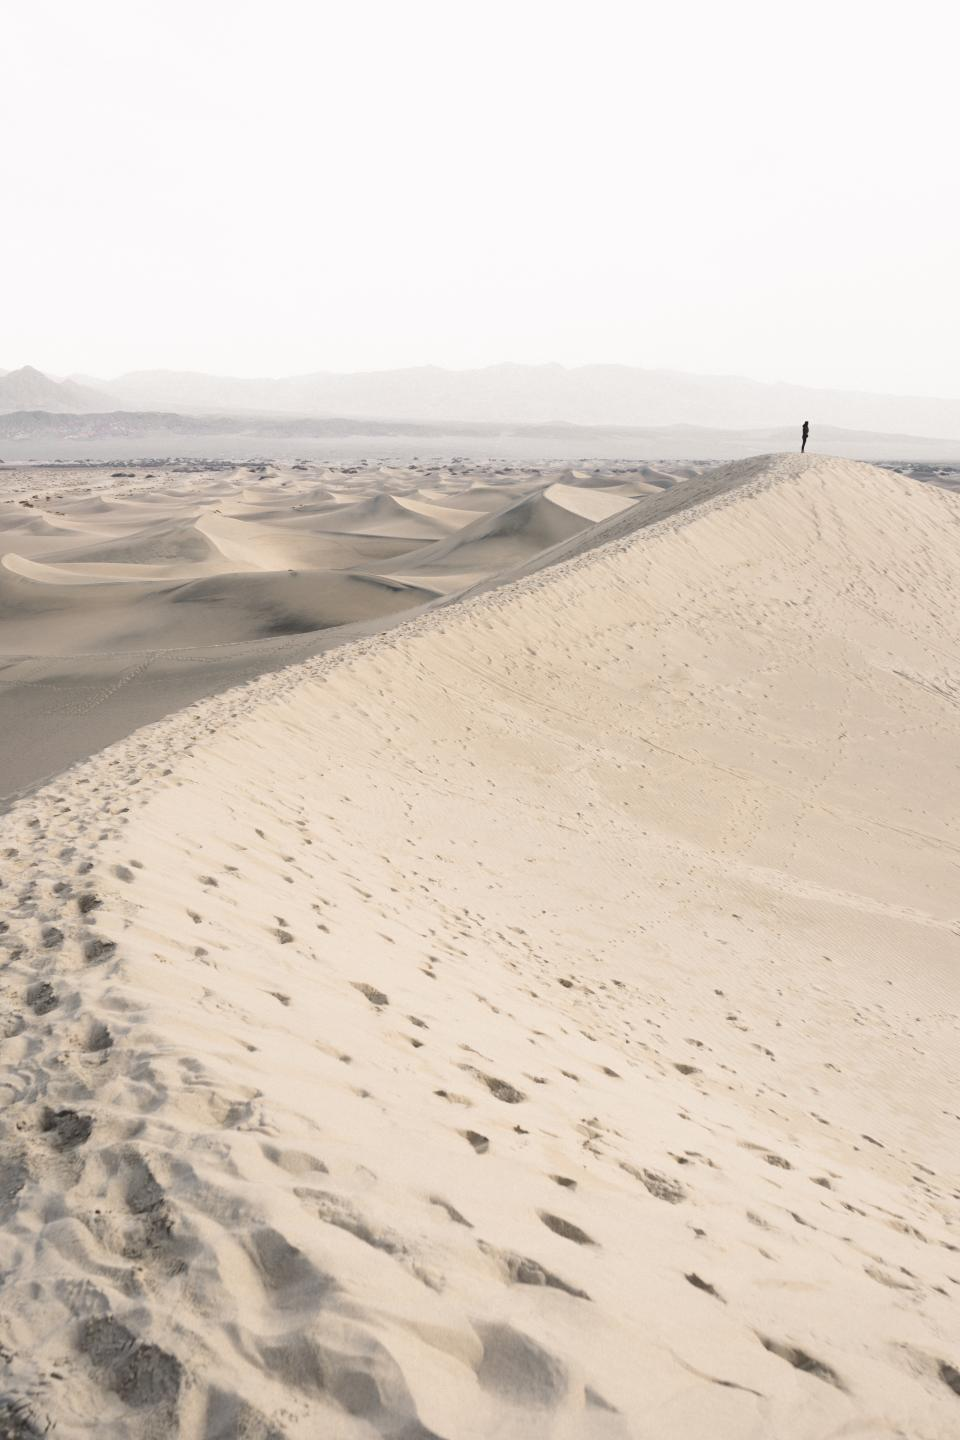 people, man, alone, travel, adventure, desert, footsteps, nature